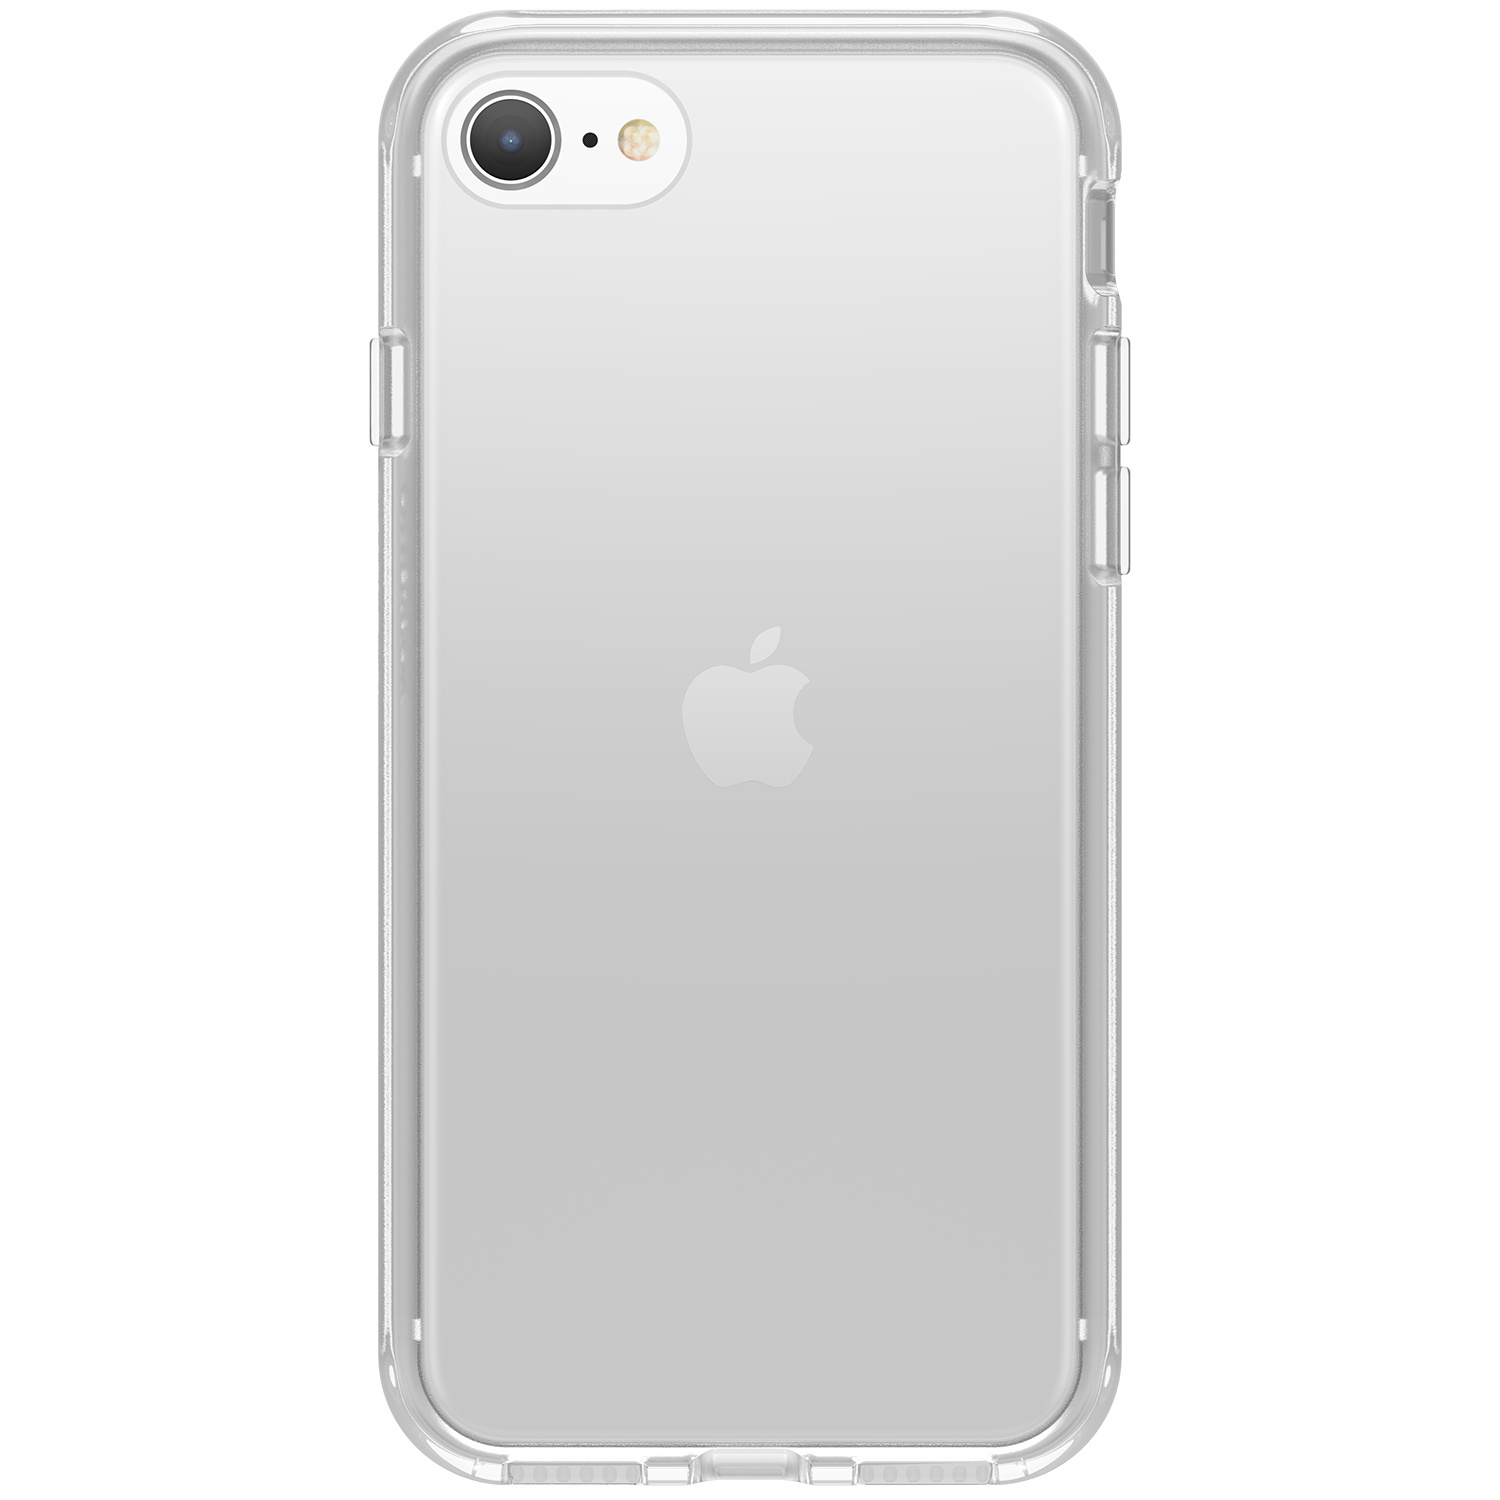 OtterBox React Backcover iPhone SE (2020) / 8 / 7 - Transparant